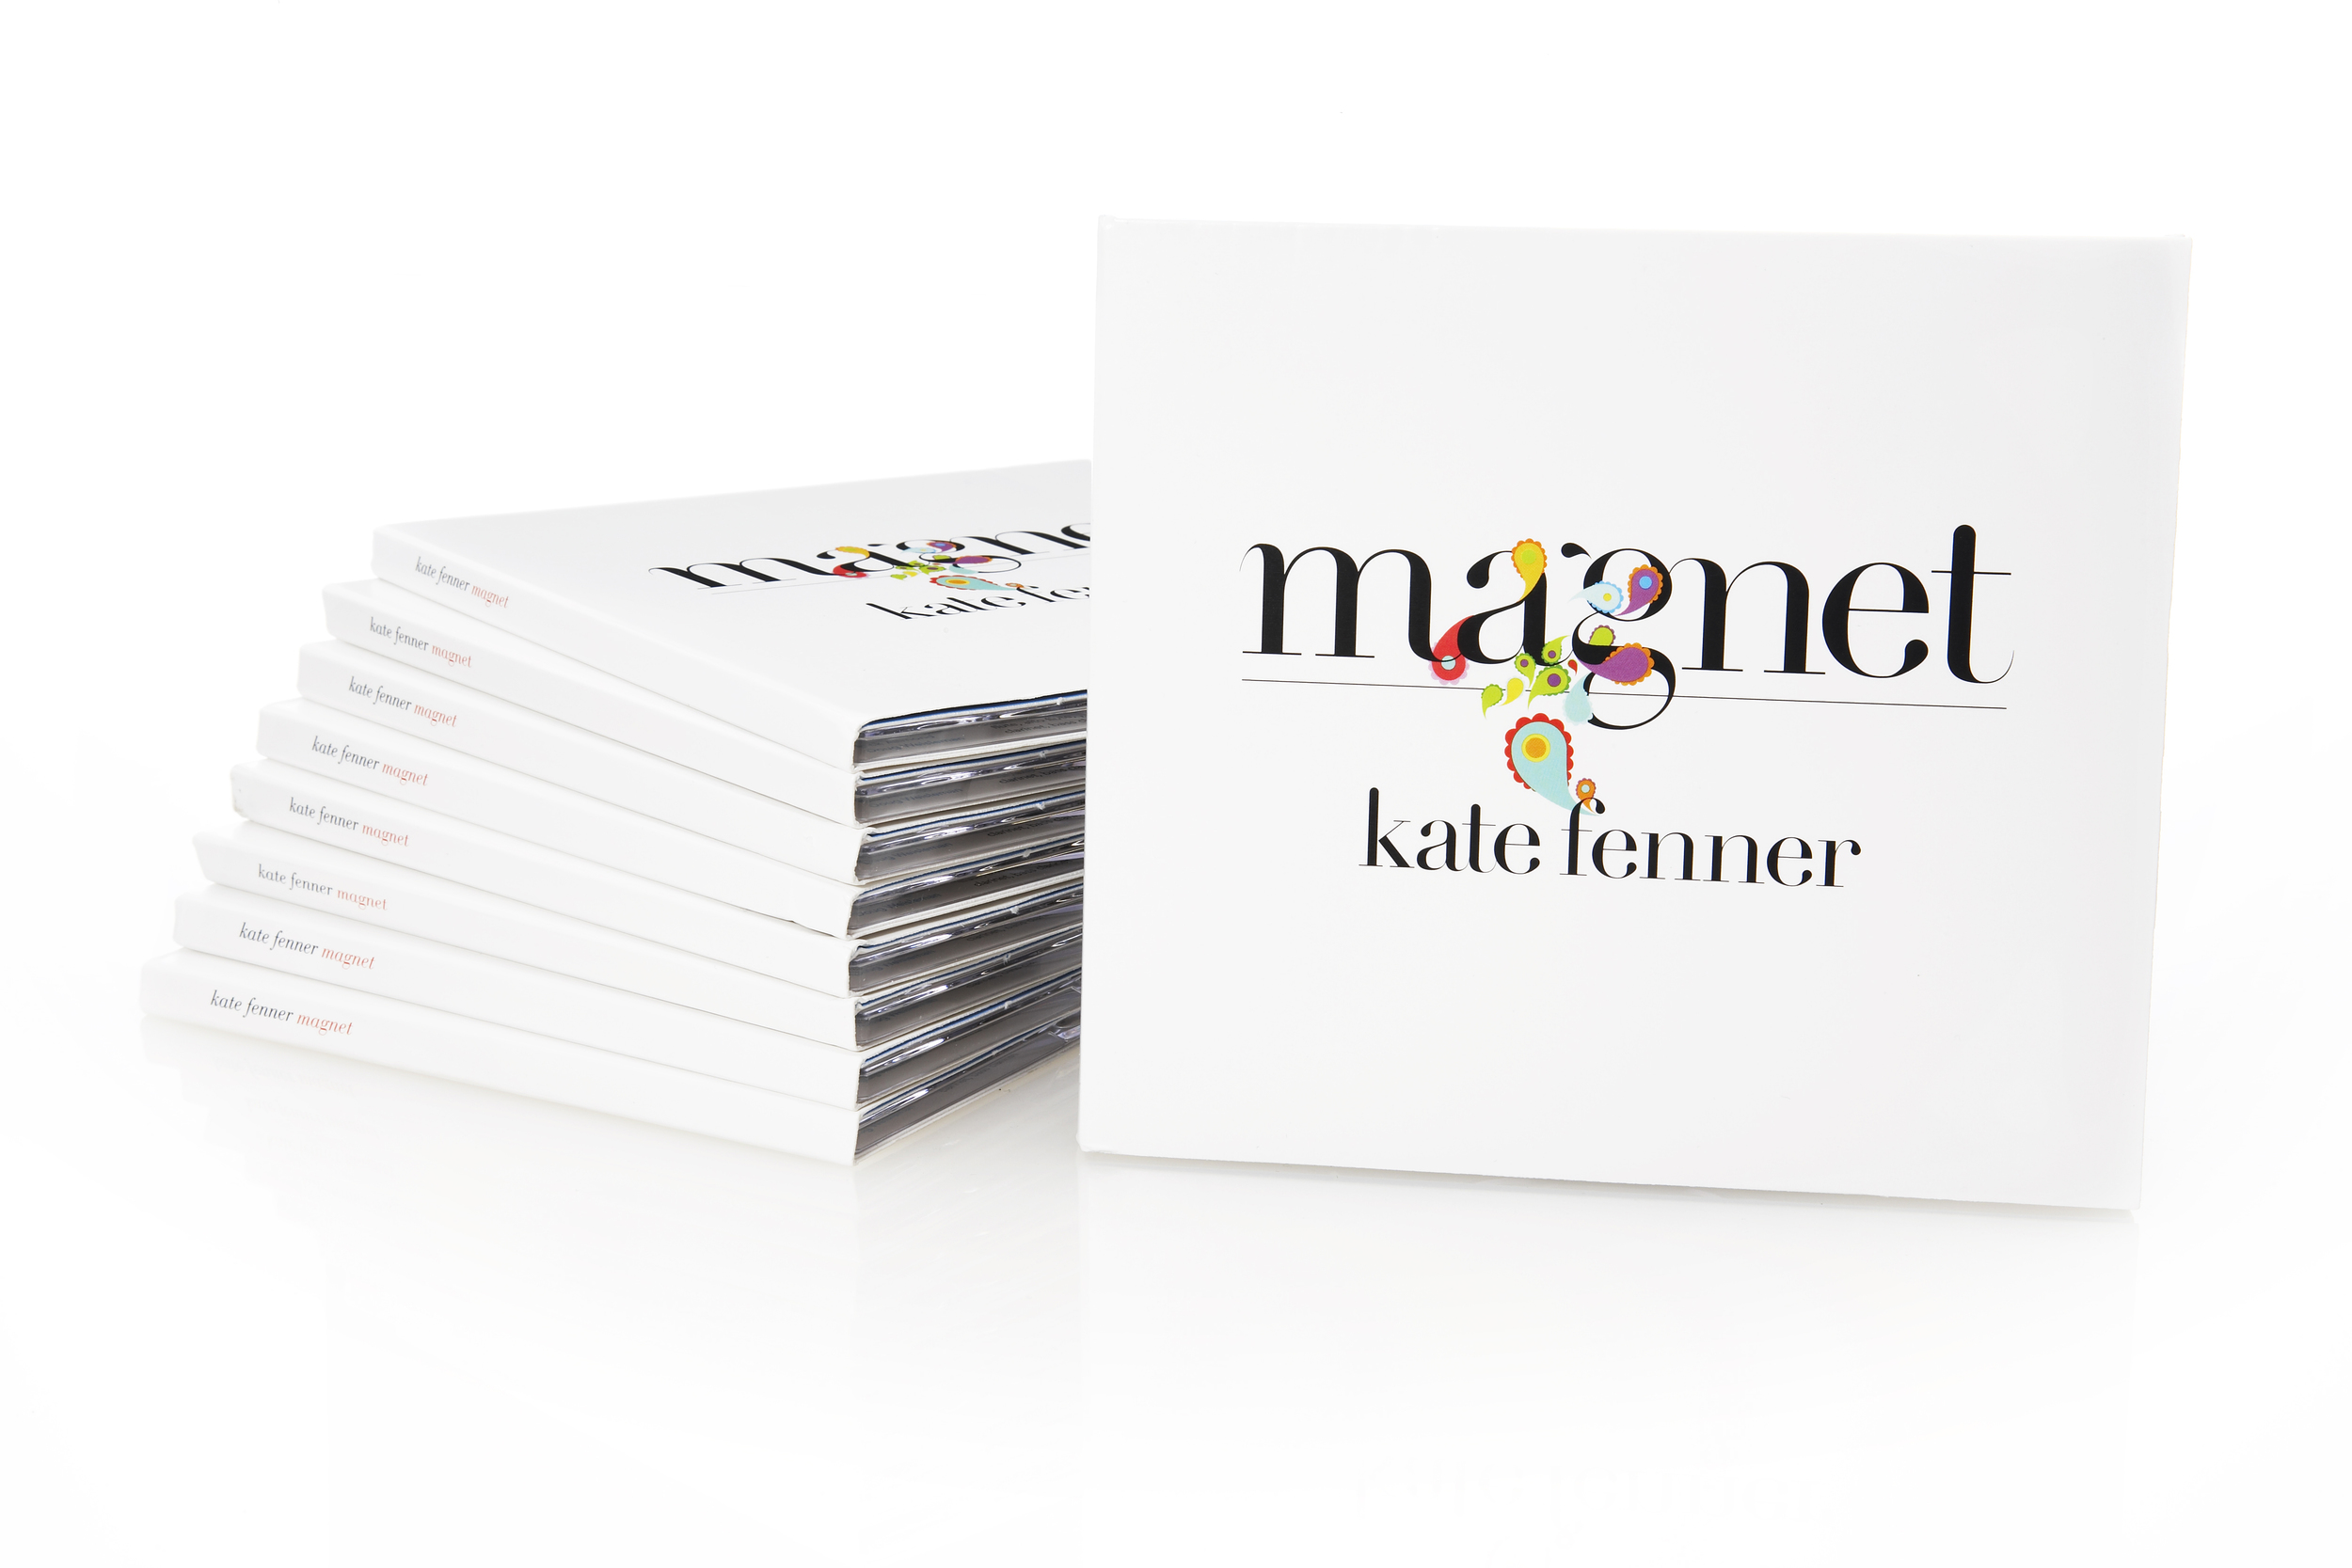 CC_212box_Kate Fenner Packaging_Stacked CD.jpg